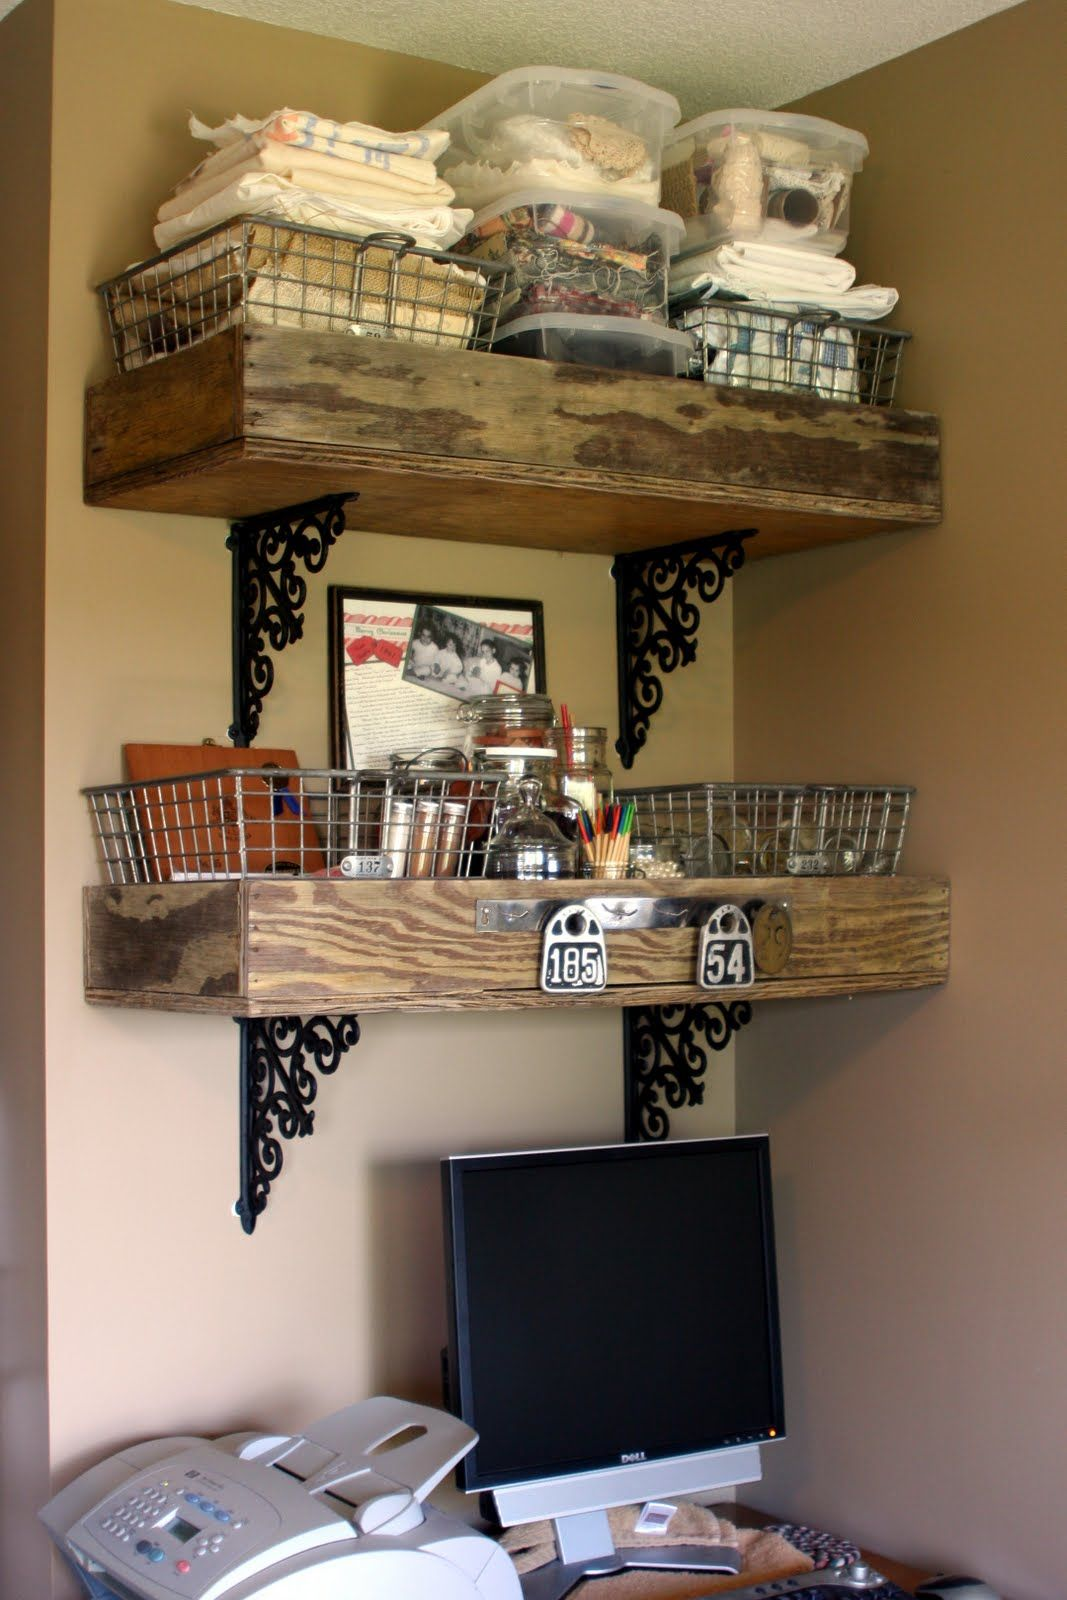 Great Shelf Idea From Old Drawers And Decorative Brackets